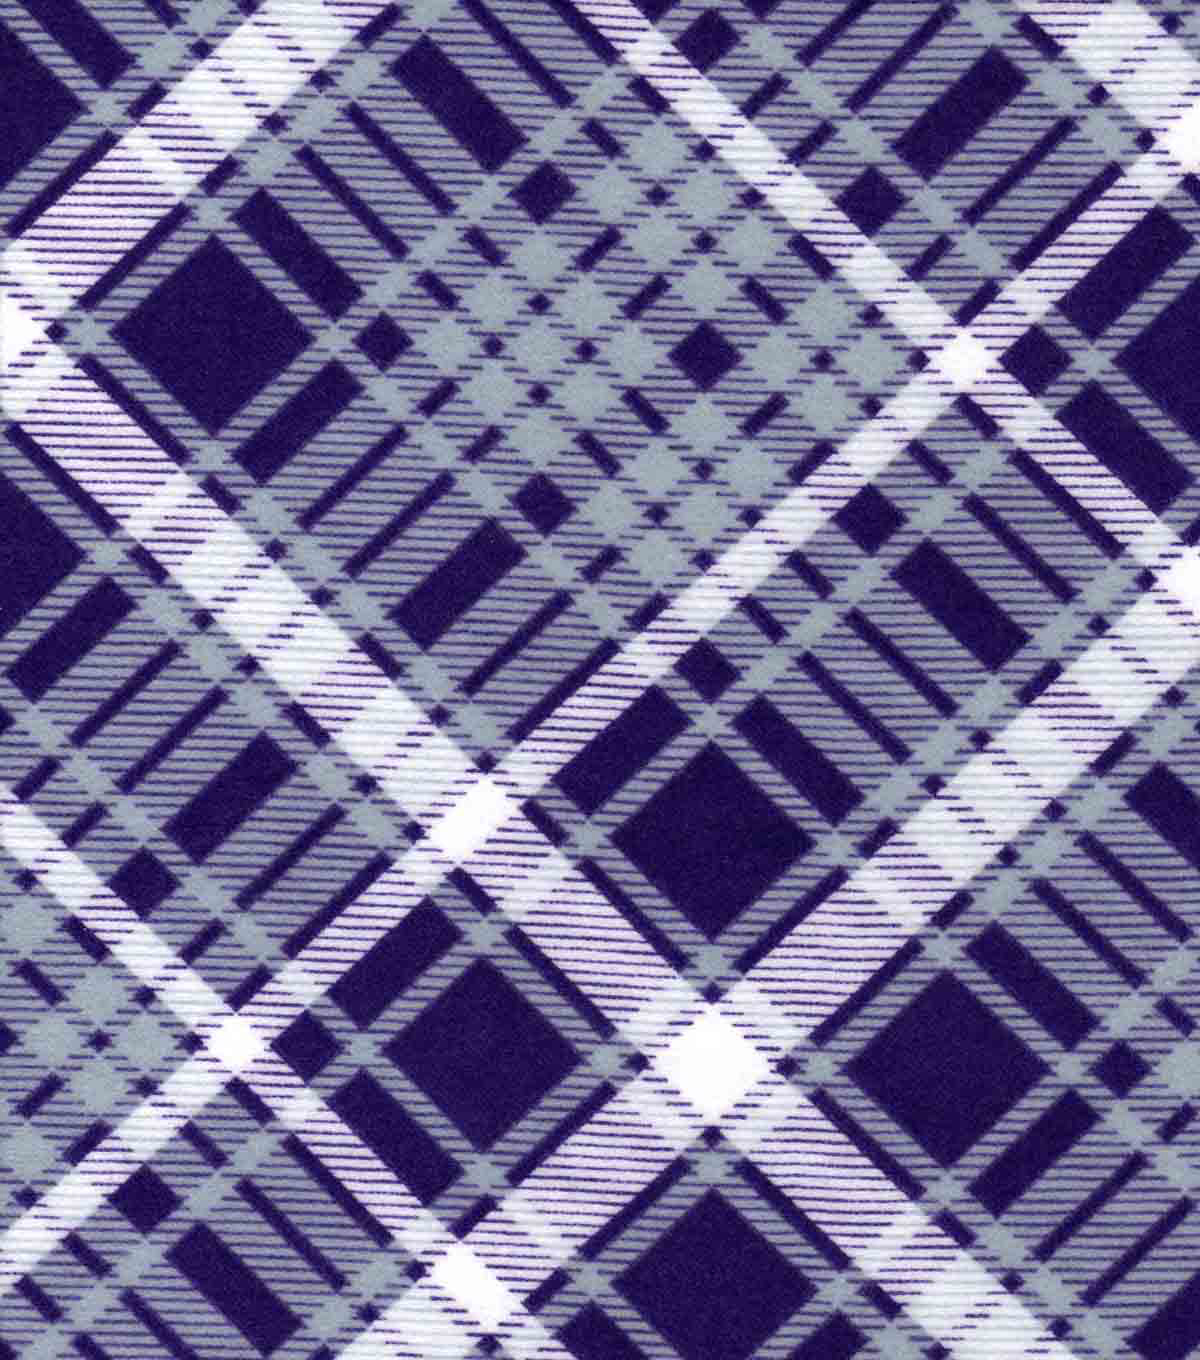 Snuggle Flannel Fabric -Kate Purple & Gray Plaid